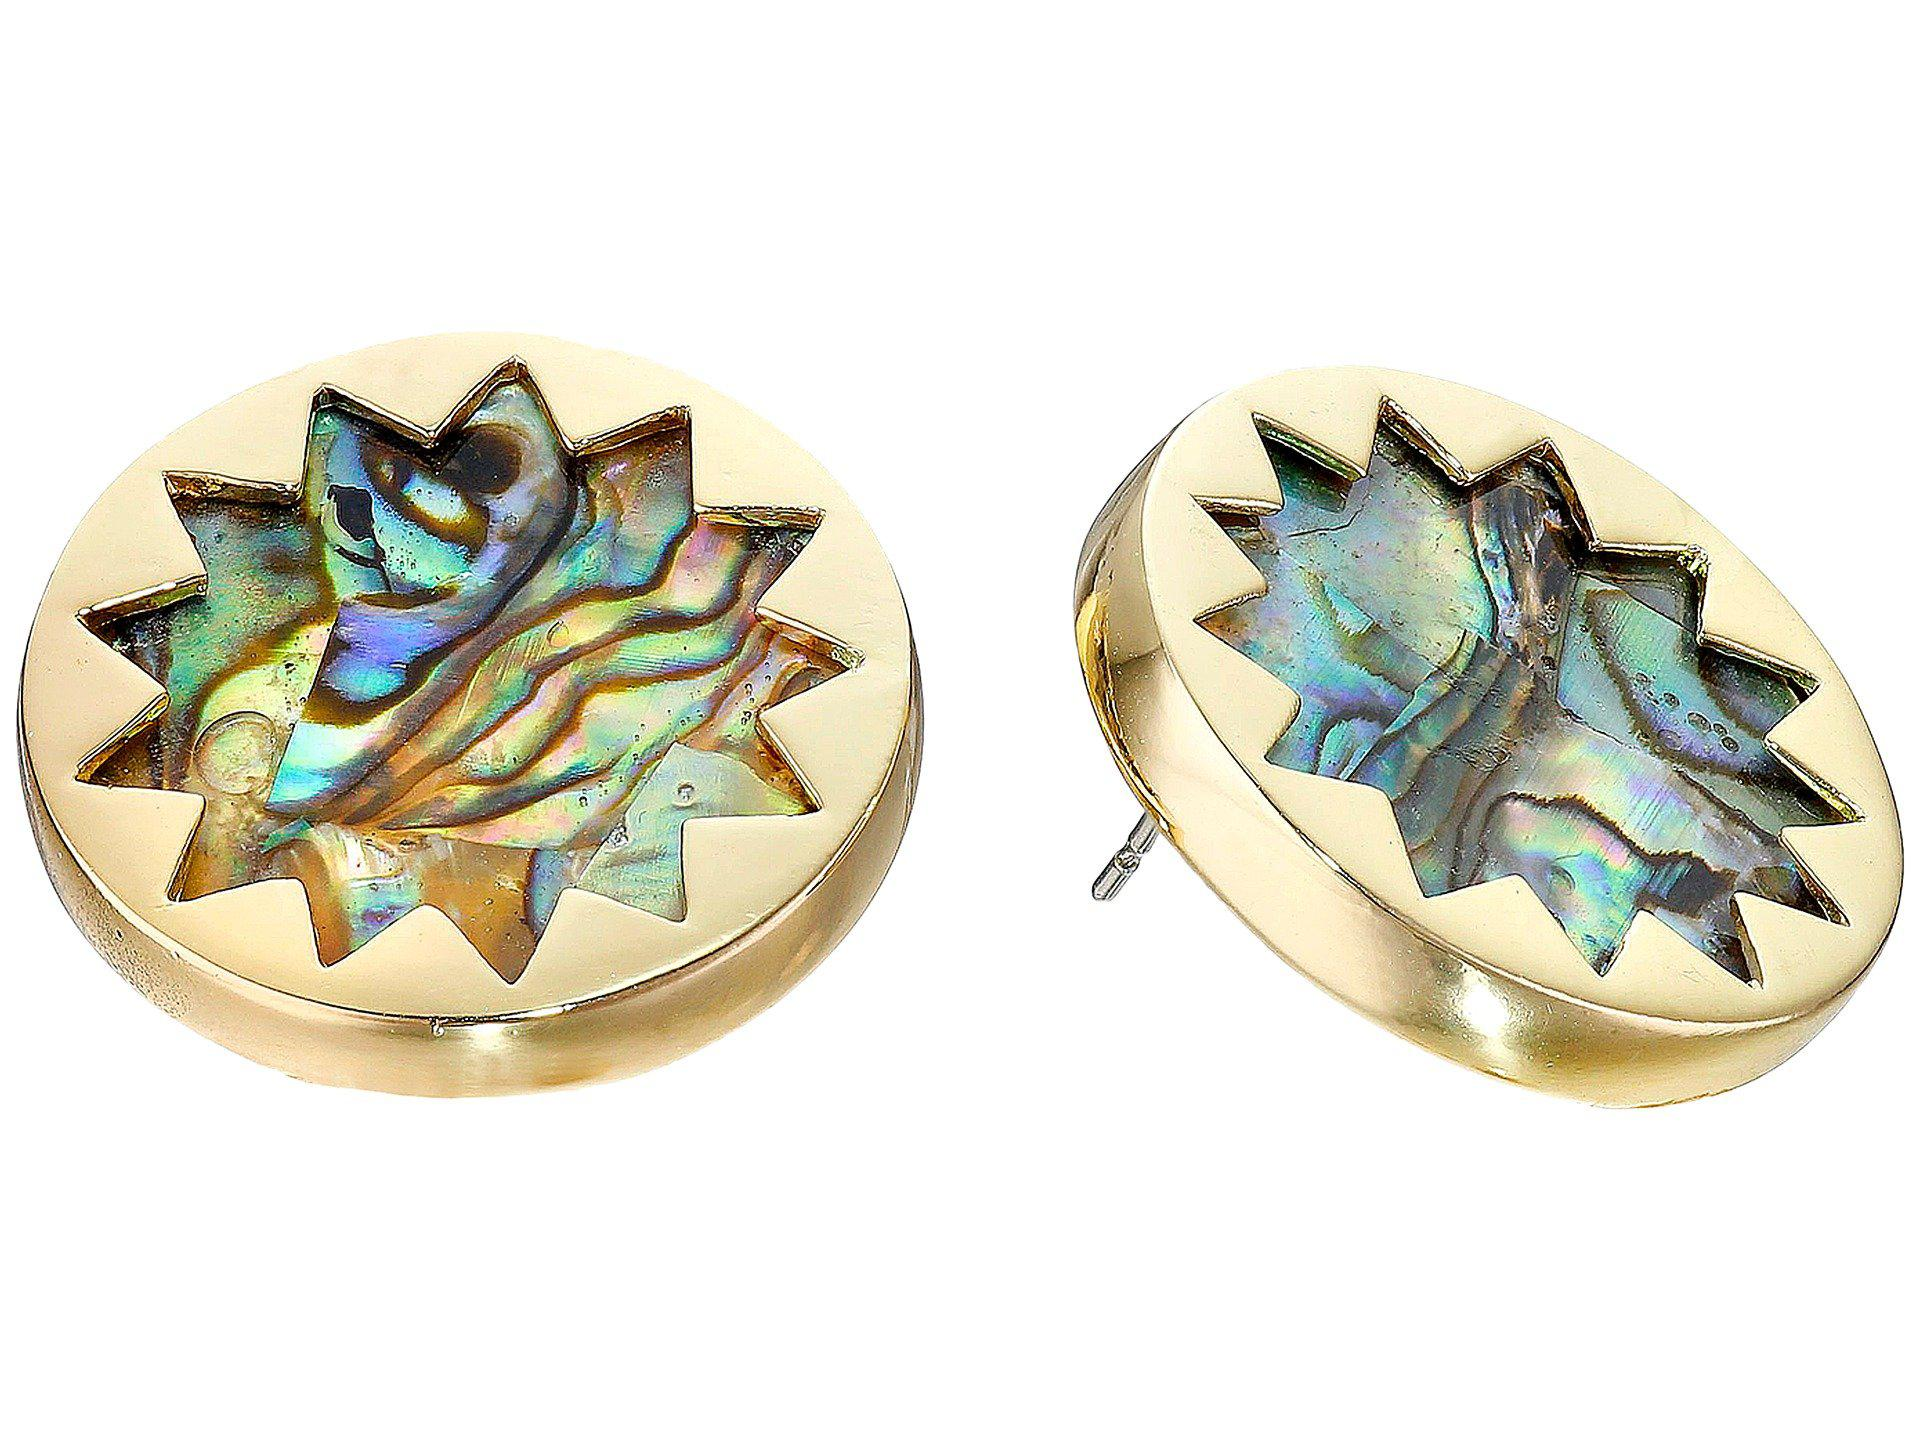 stud earrings studs mexican flourish sterling pin silver shaped vintage abalone bohemian hexagon